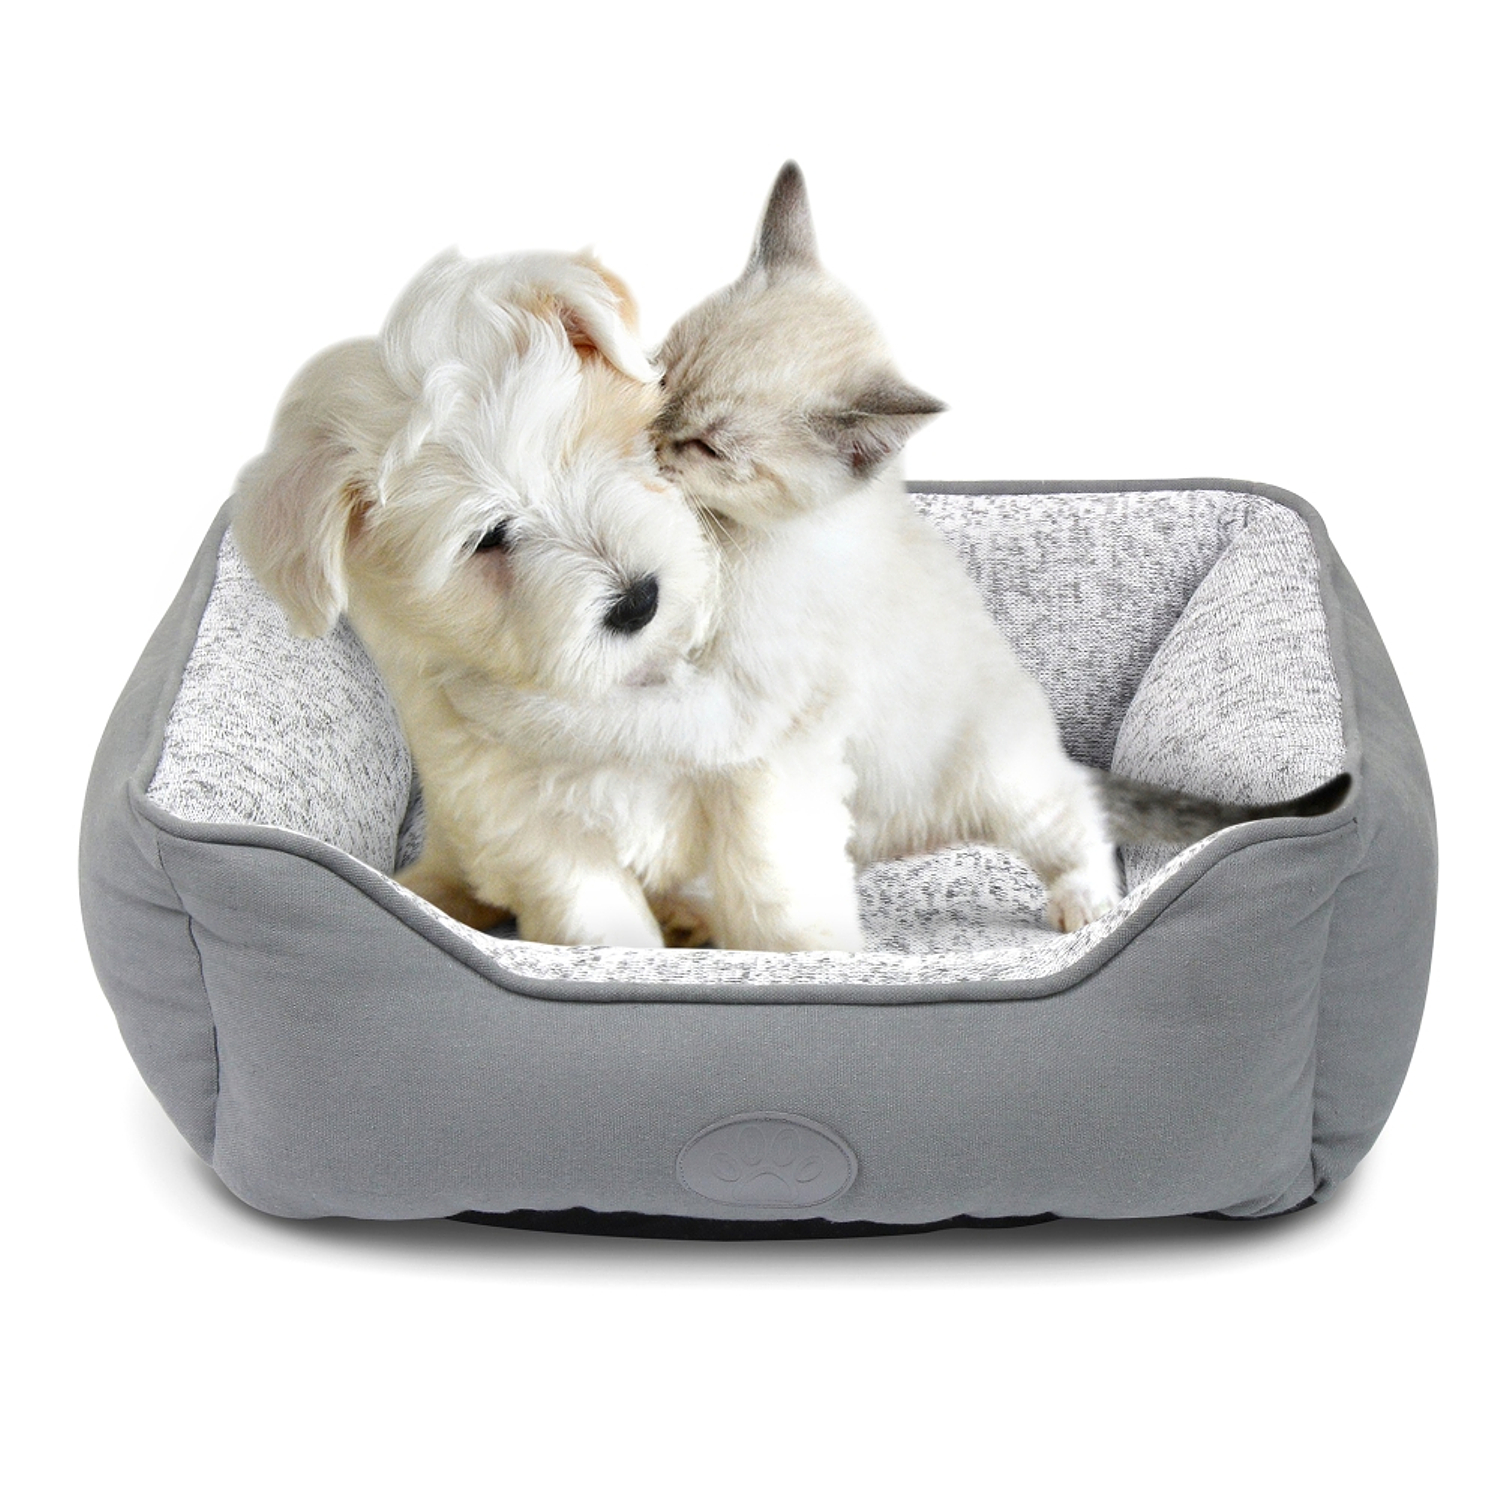 Fluffy Paws Small Non Slip Soft Warm Pet Comfort Couch Dog Cat Lounger Sofa  Bed